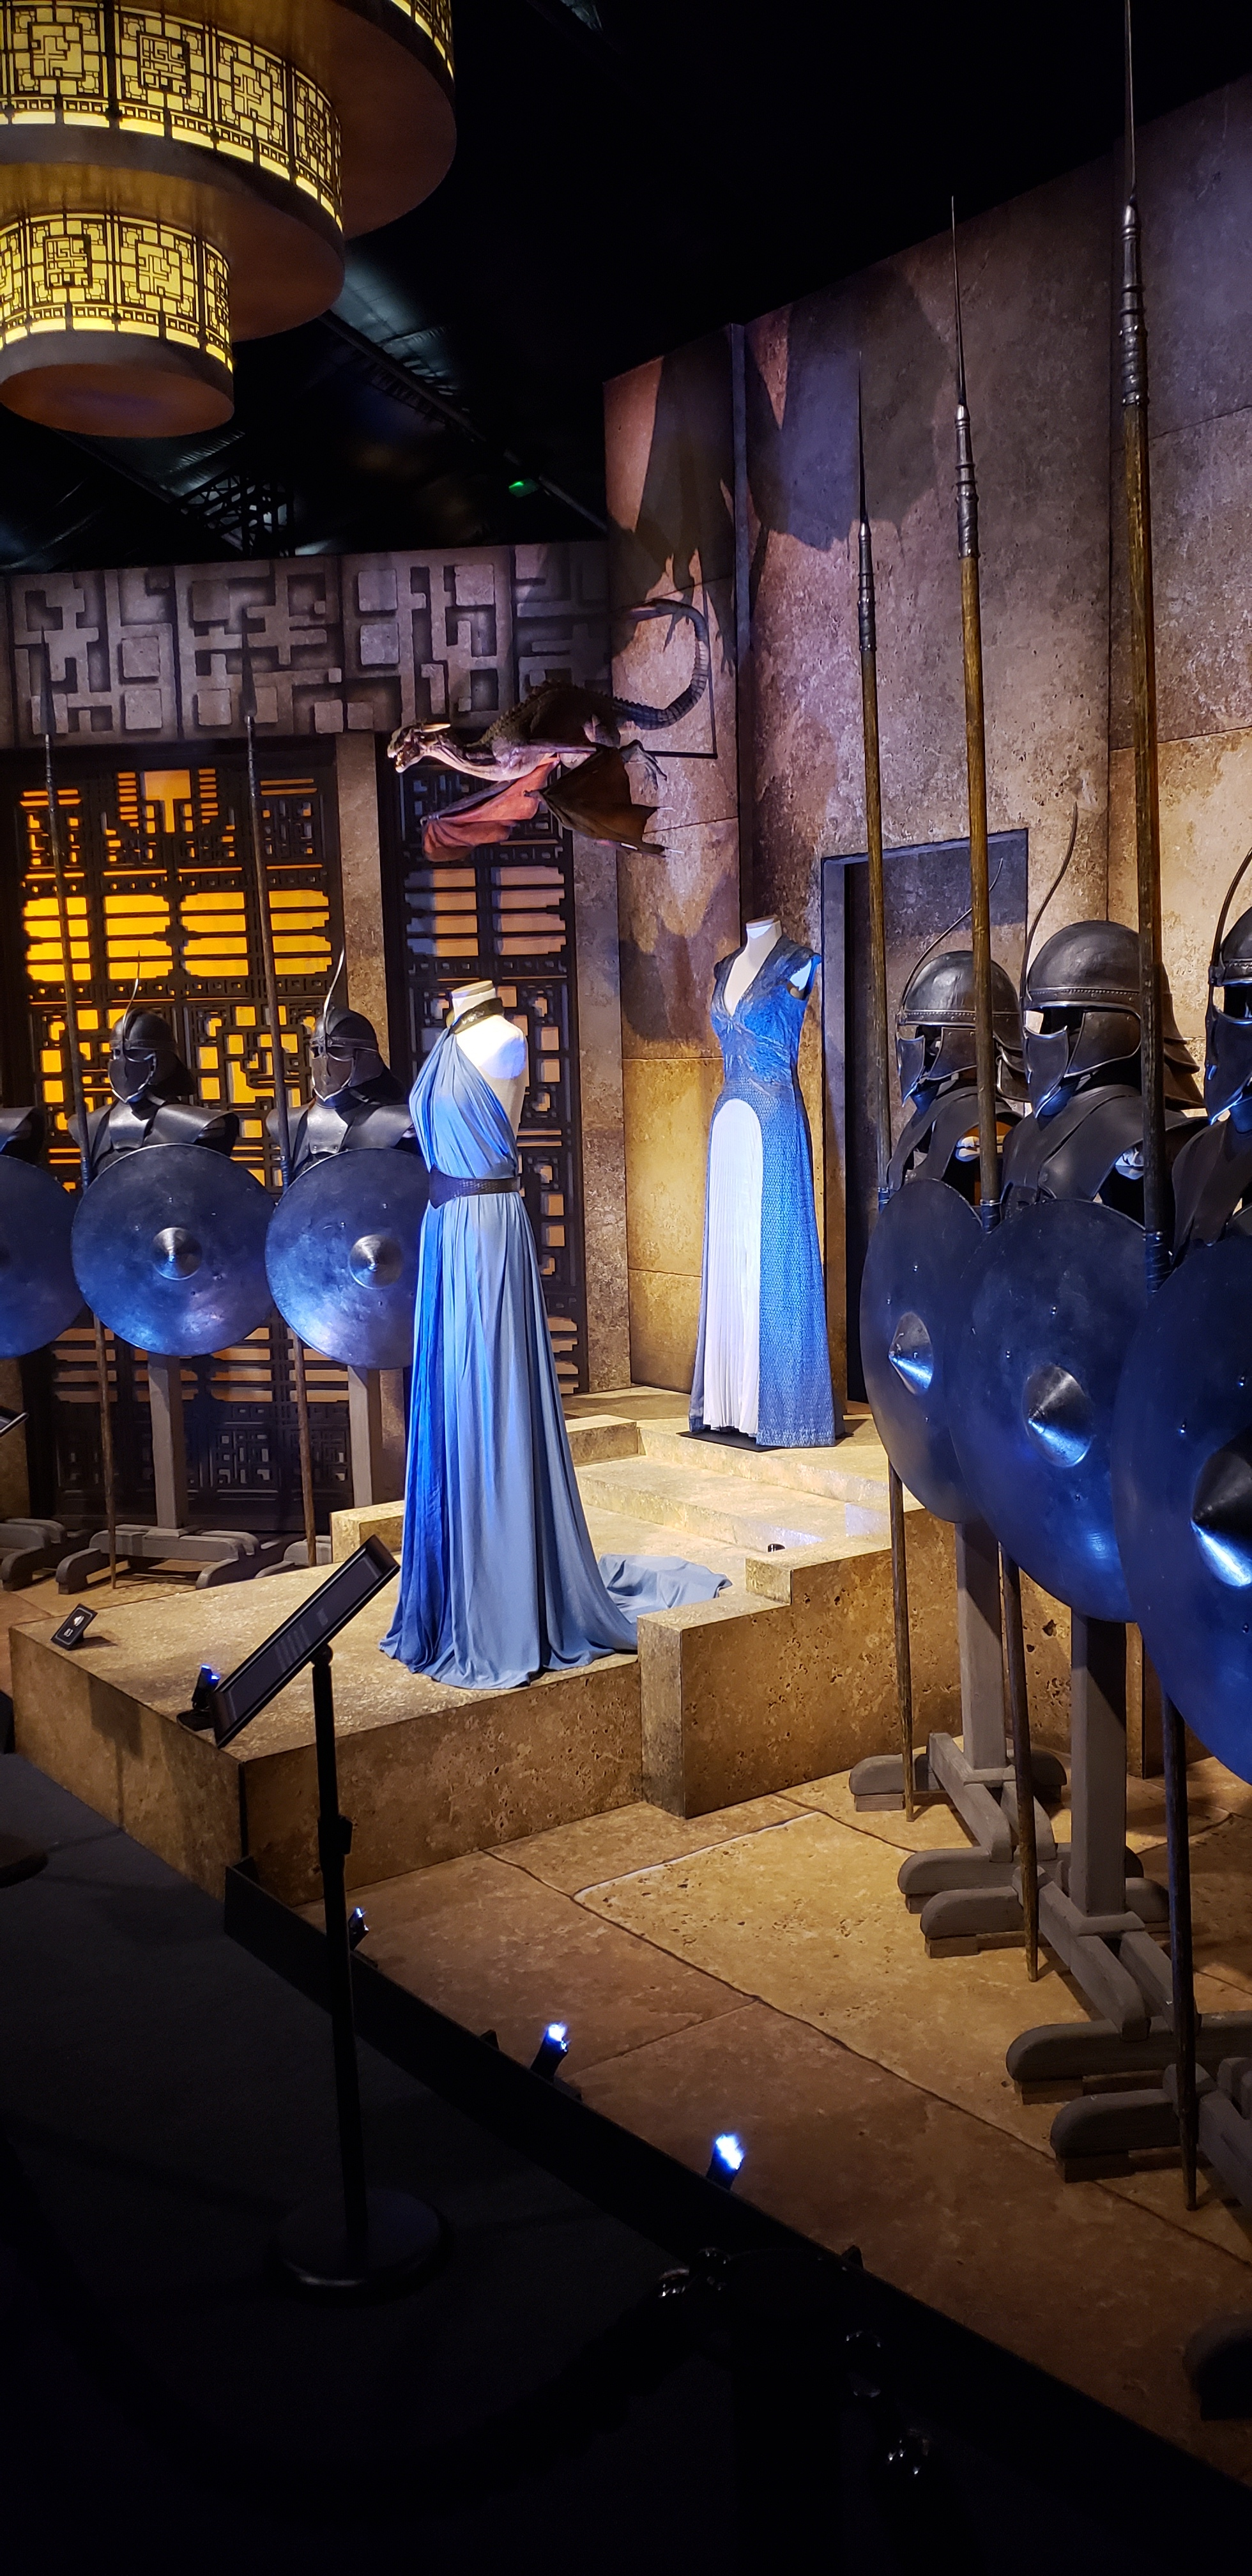 Daenerys and Missandei costumes amongst the Unsullied armor